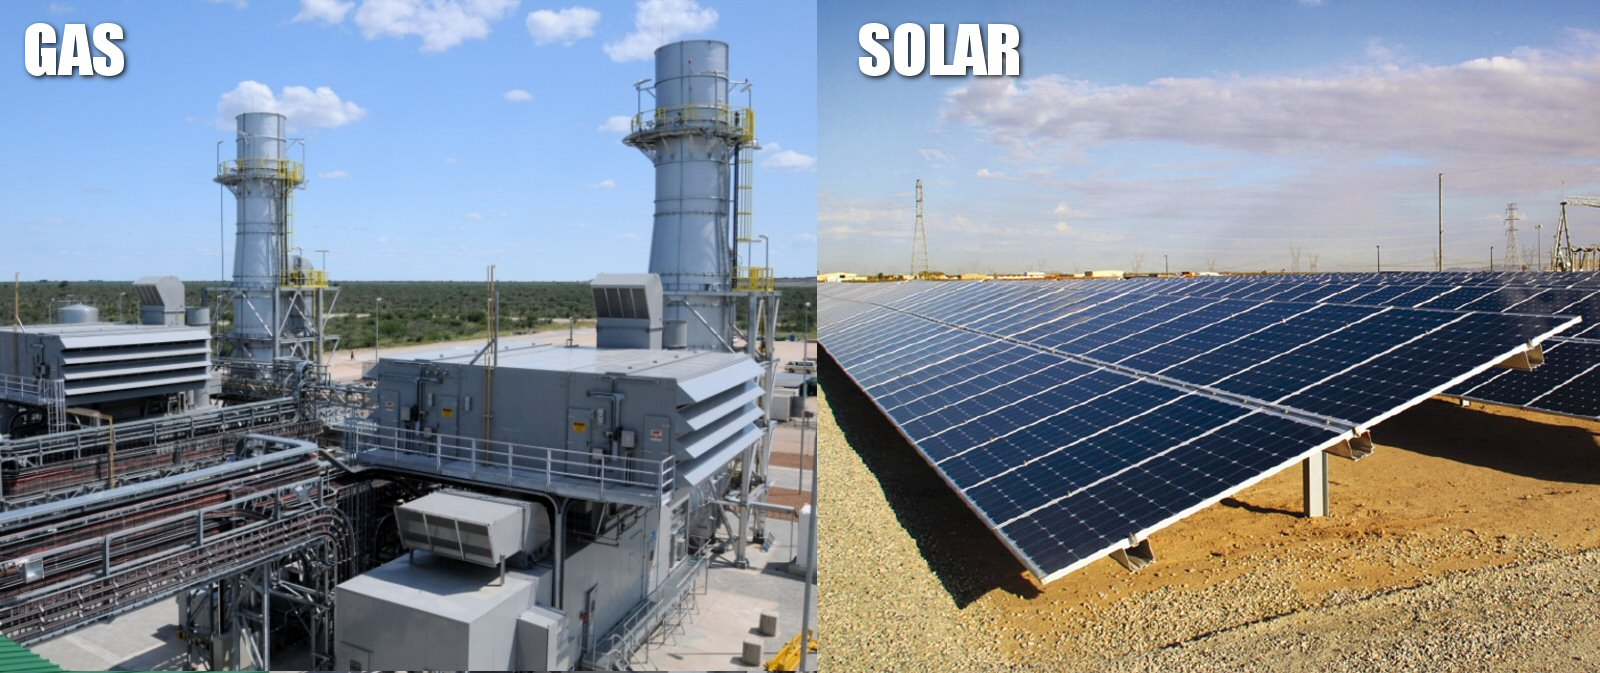 A Solar Power Plant vs  A Natural Gas Power Plant: Capital Cost